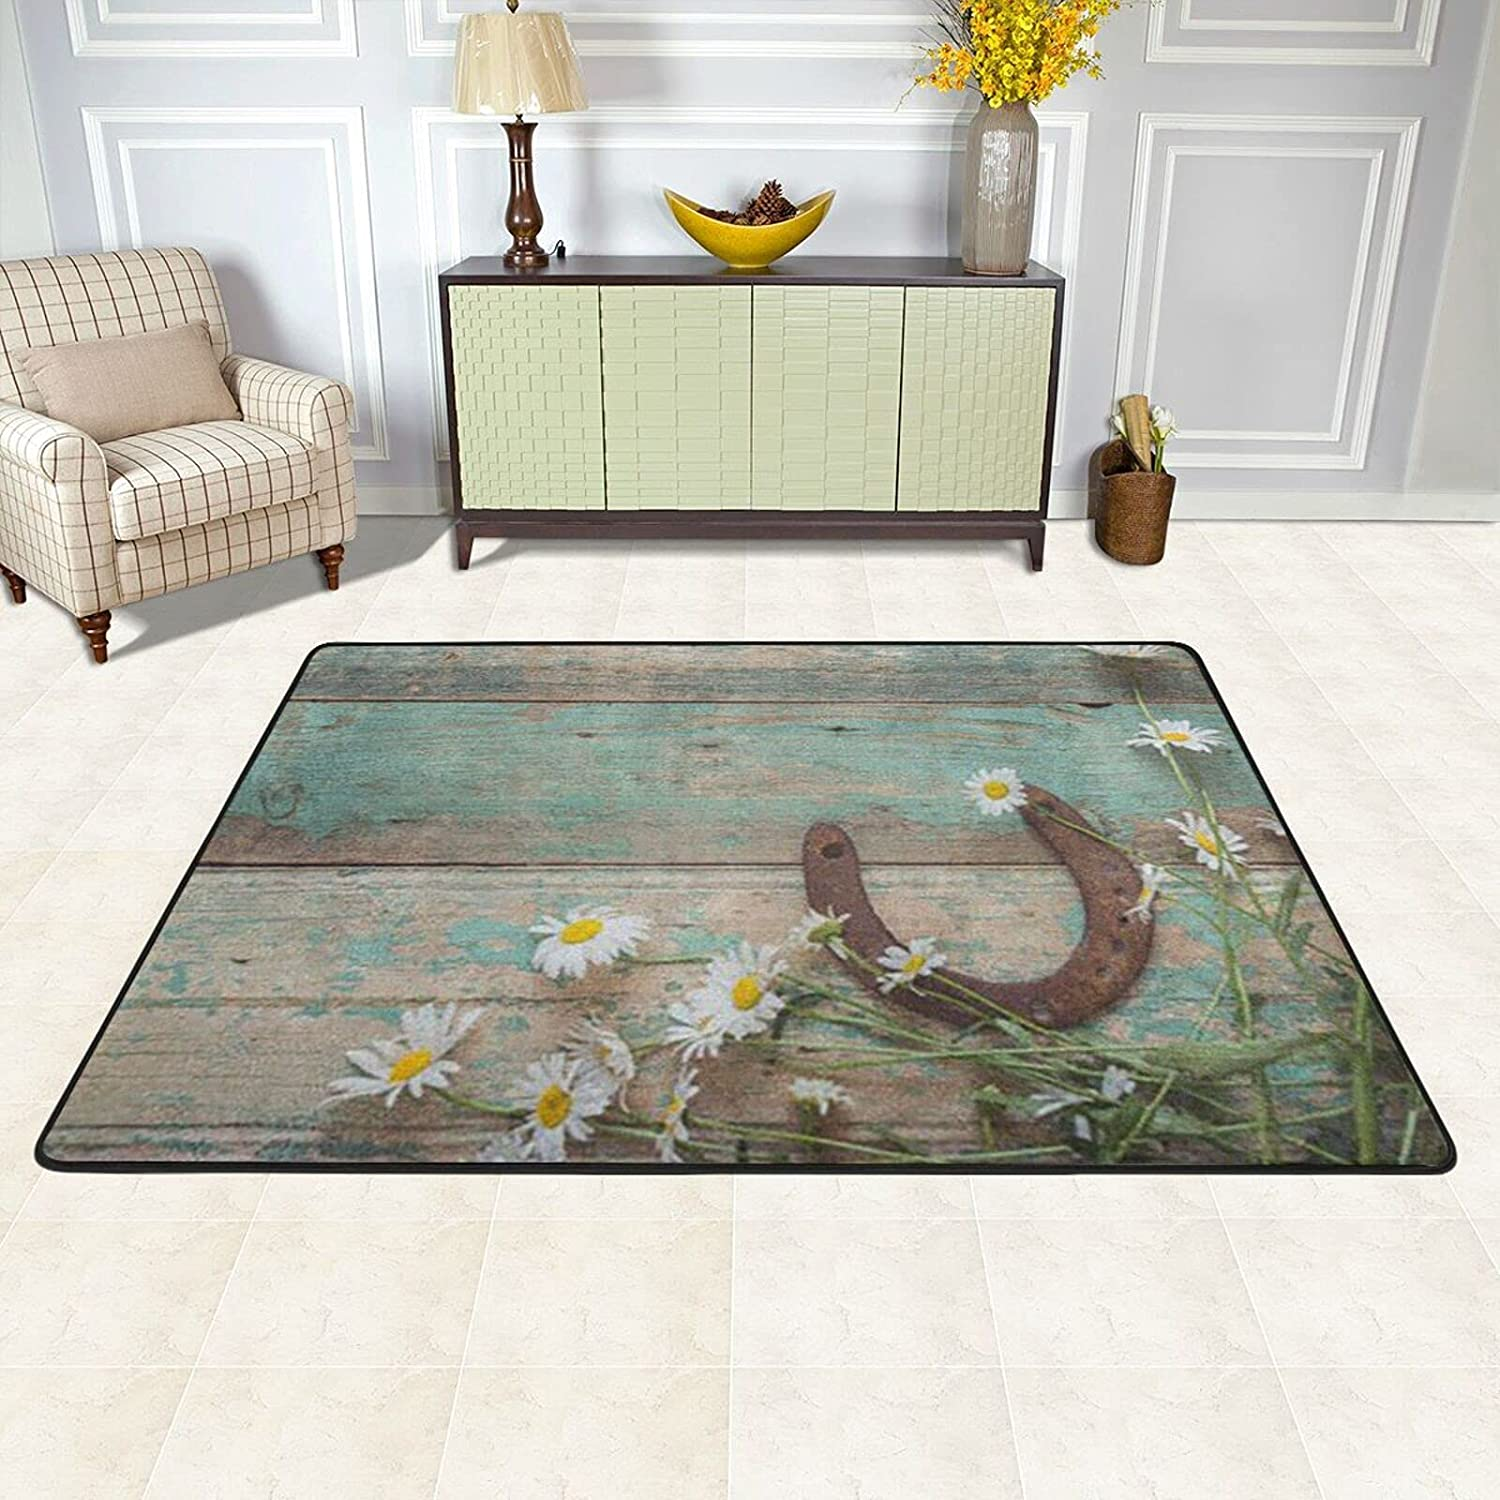 Western Max Spring new work 55% OFF Country Rustic Aqua Brown Cowboy Carpet Floral Absorbent